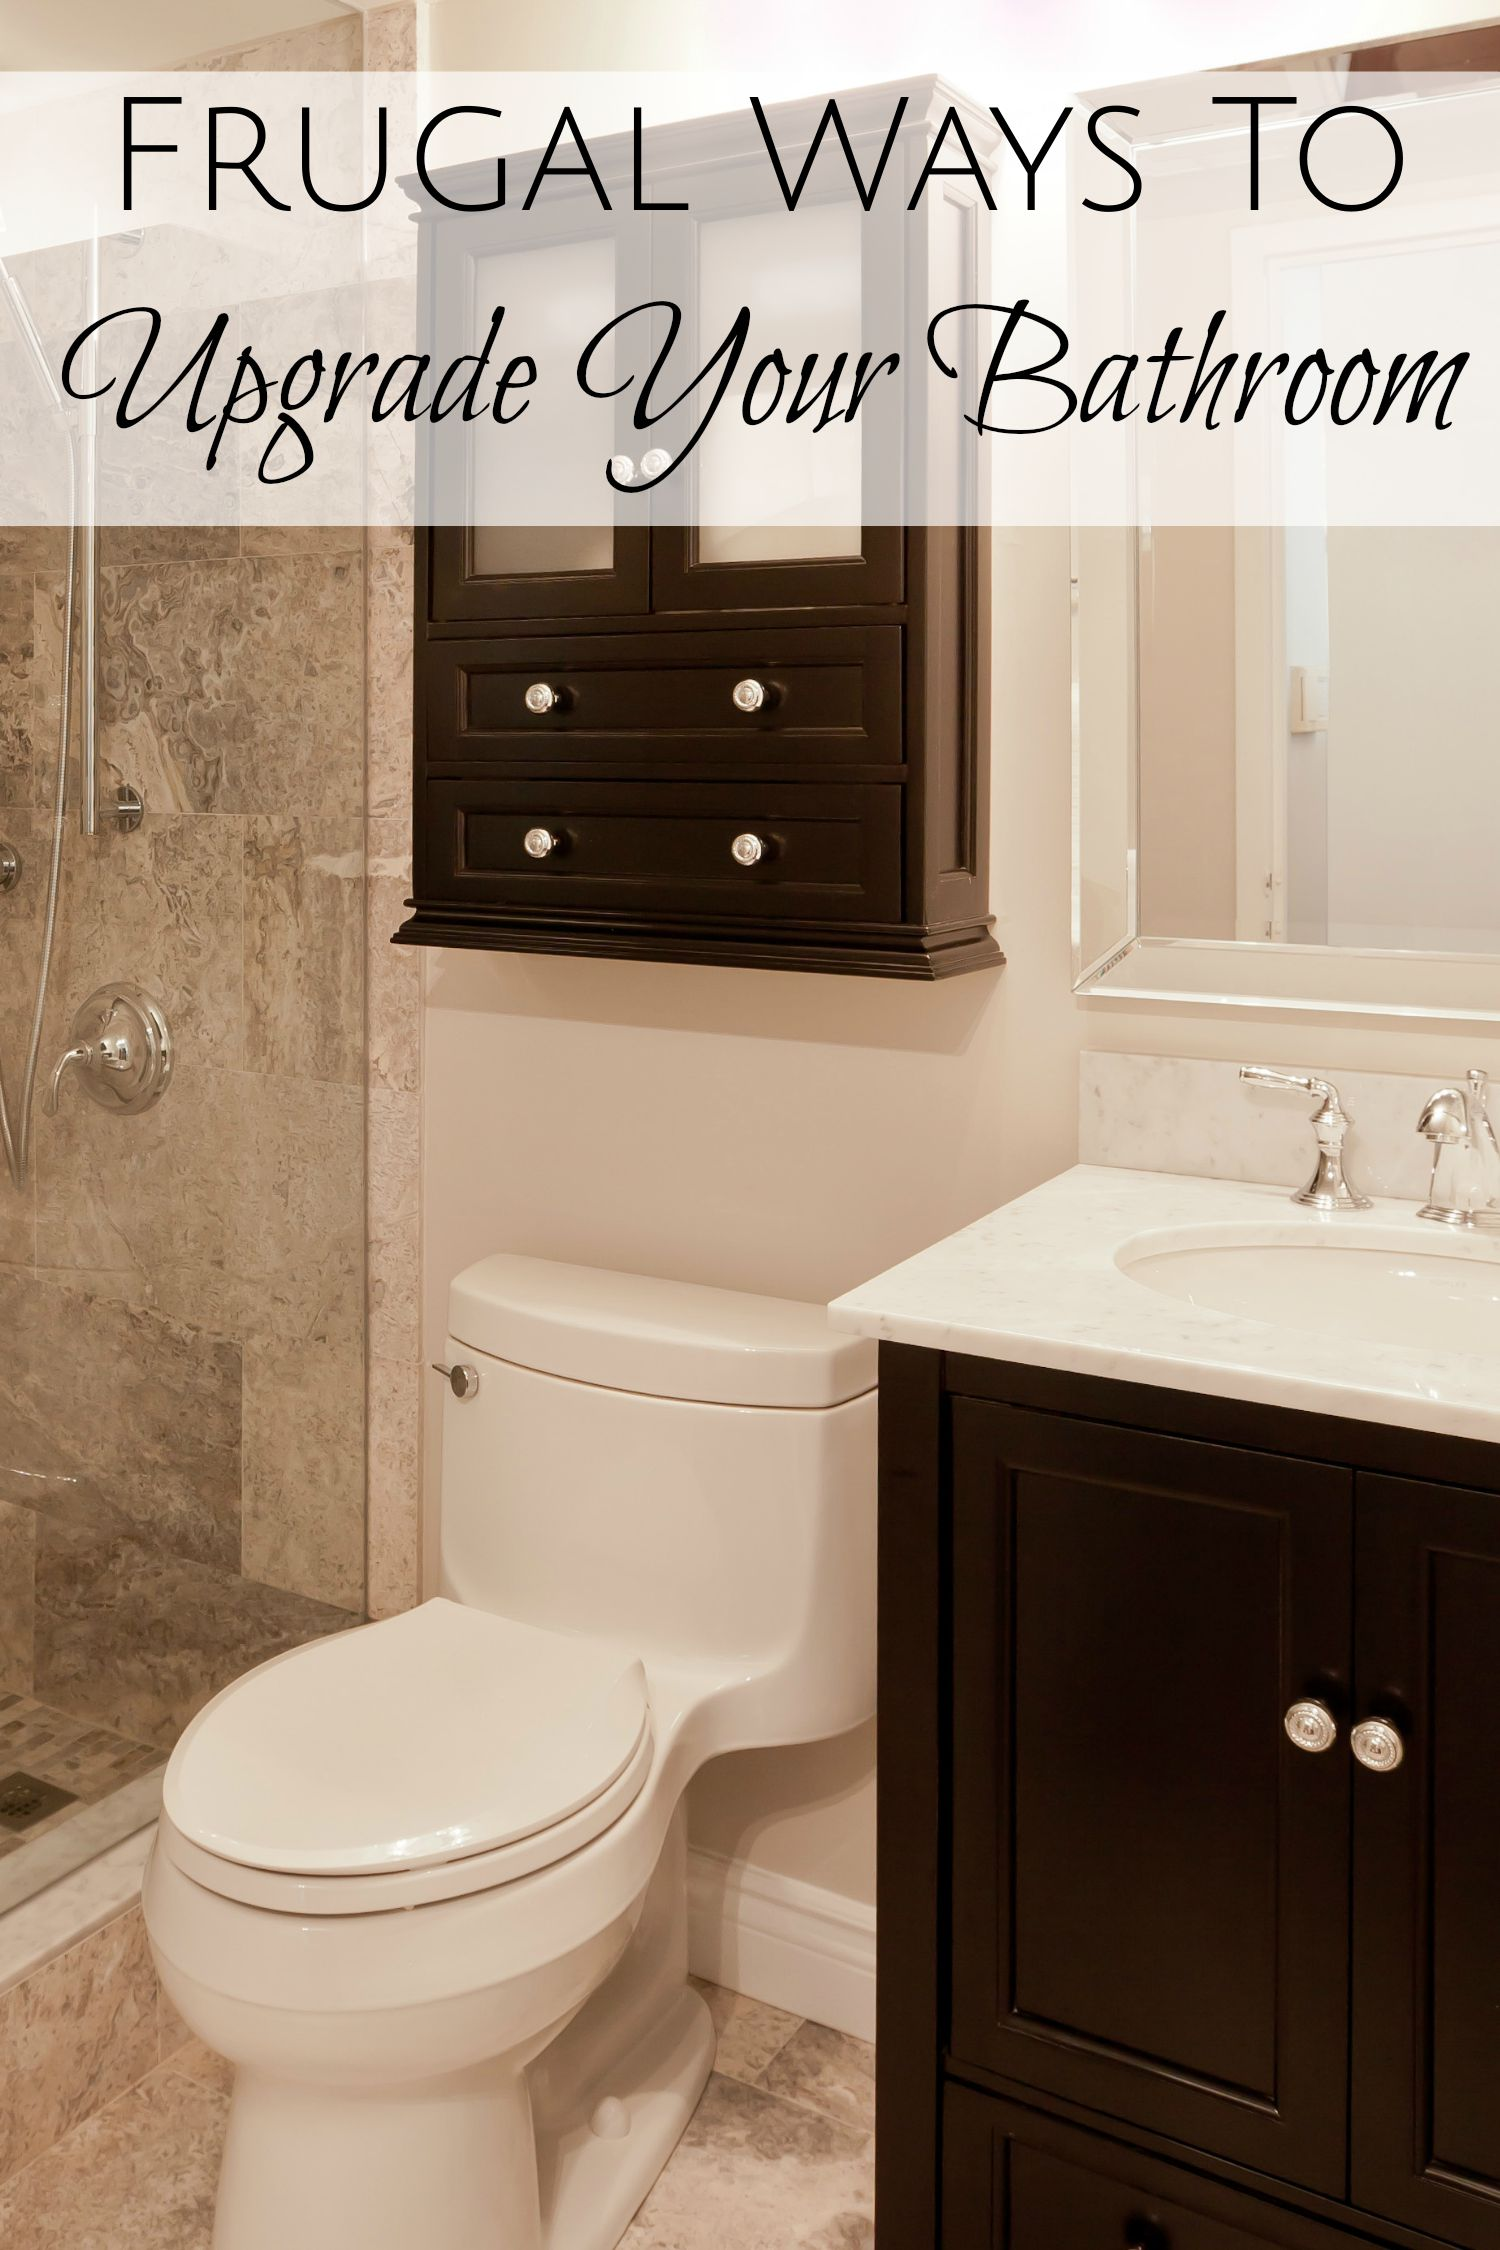 Frugal Ways To Upgrade Your Bathroom